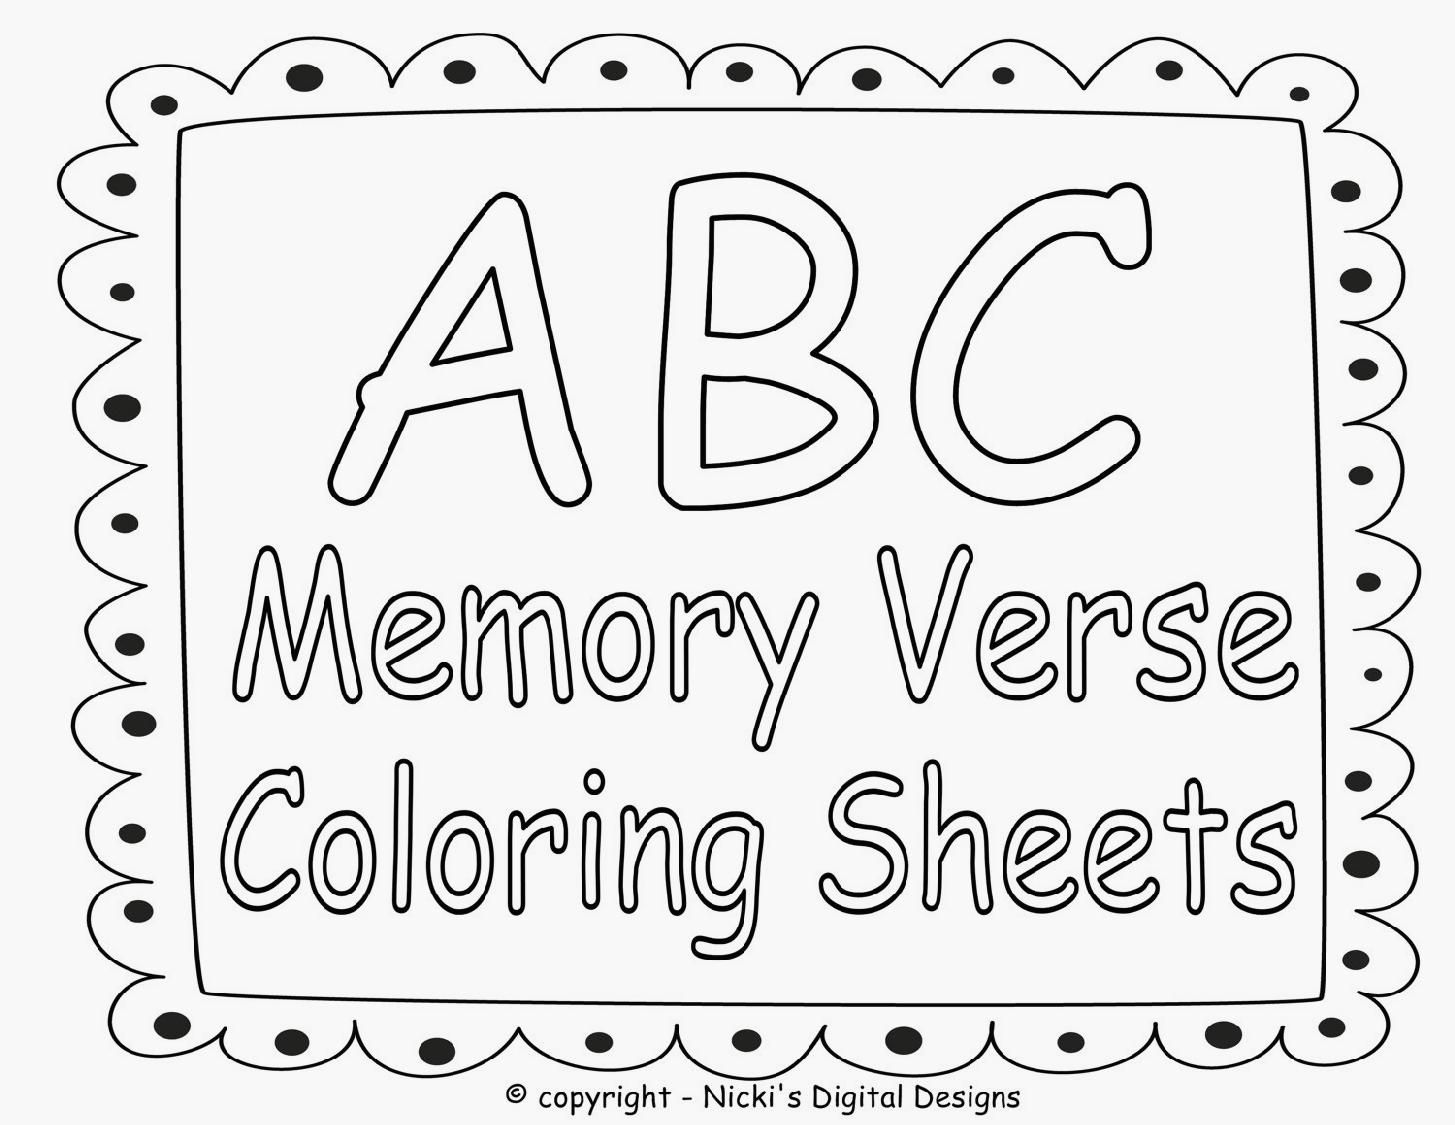 coloring bible verses for kids free printable scripture verse coloring pages what mommy verses bible kids for coloring